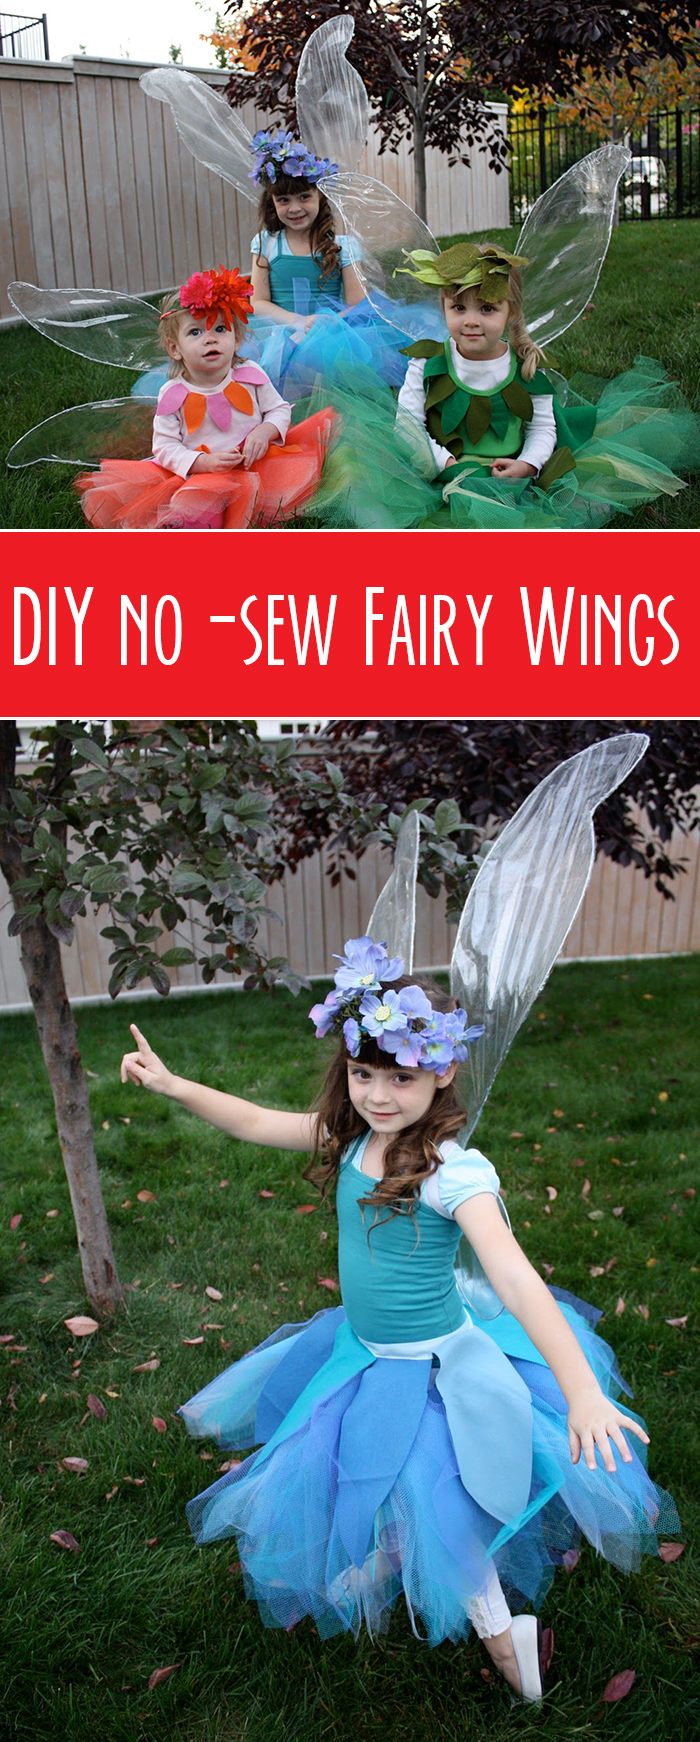 DIY no-sew fairy wings